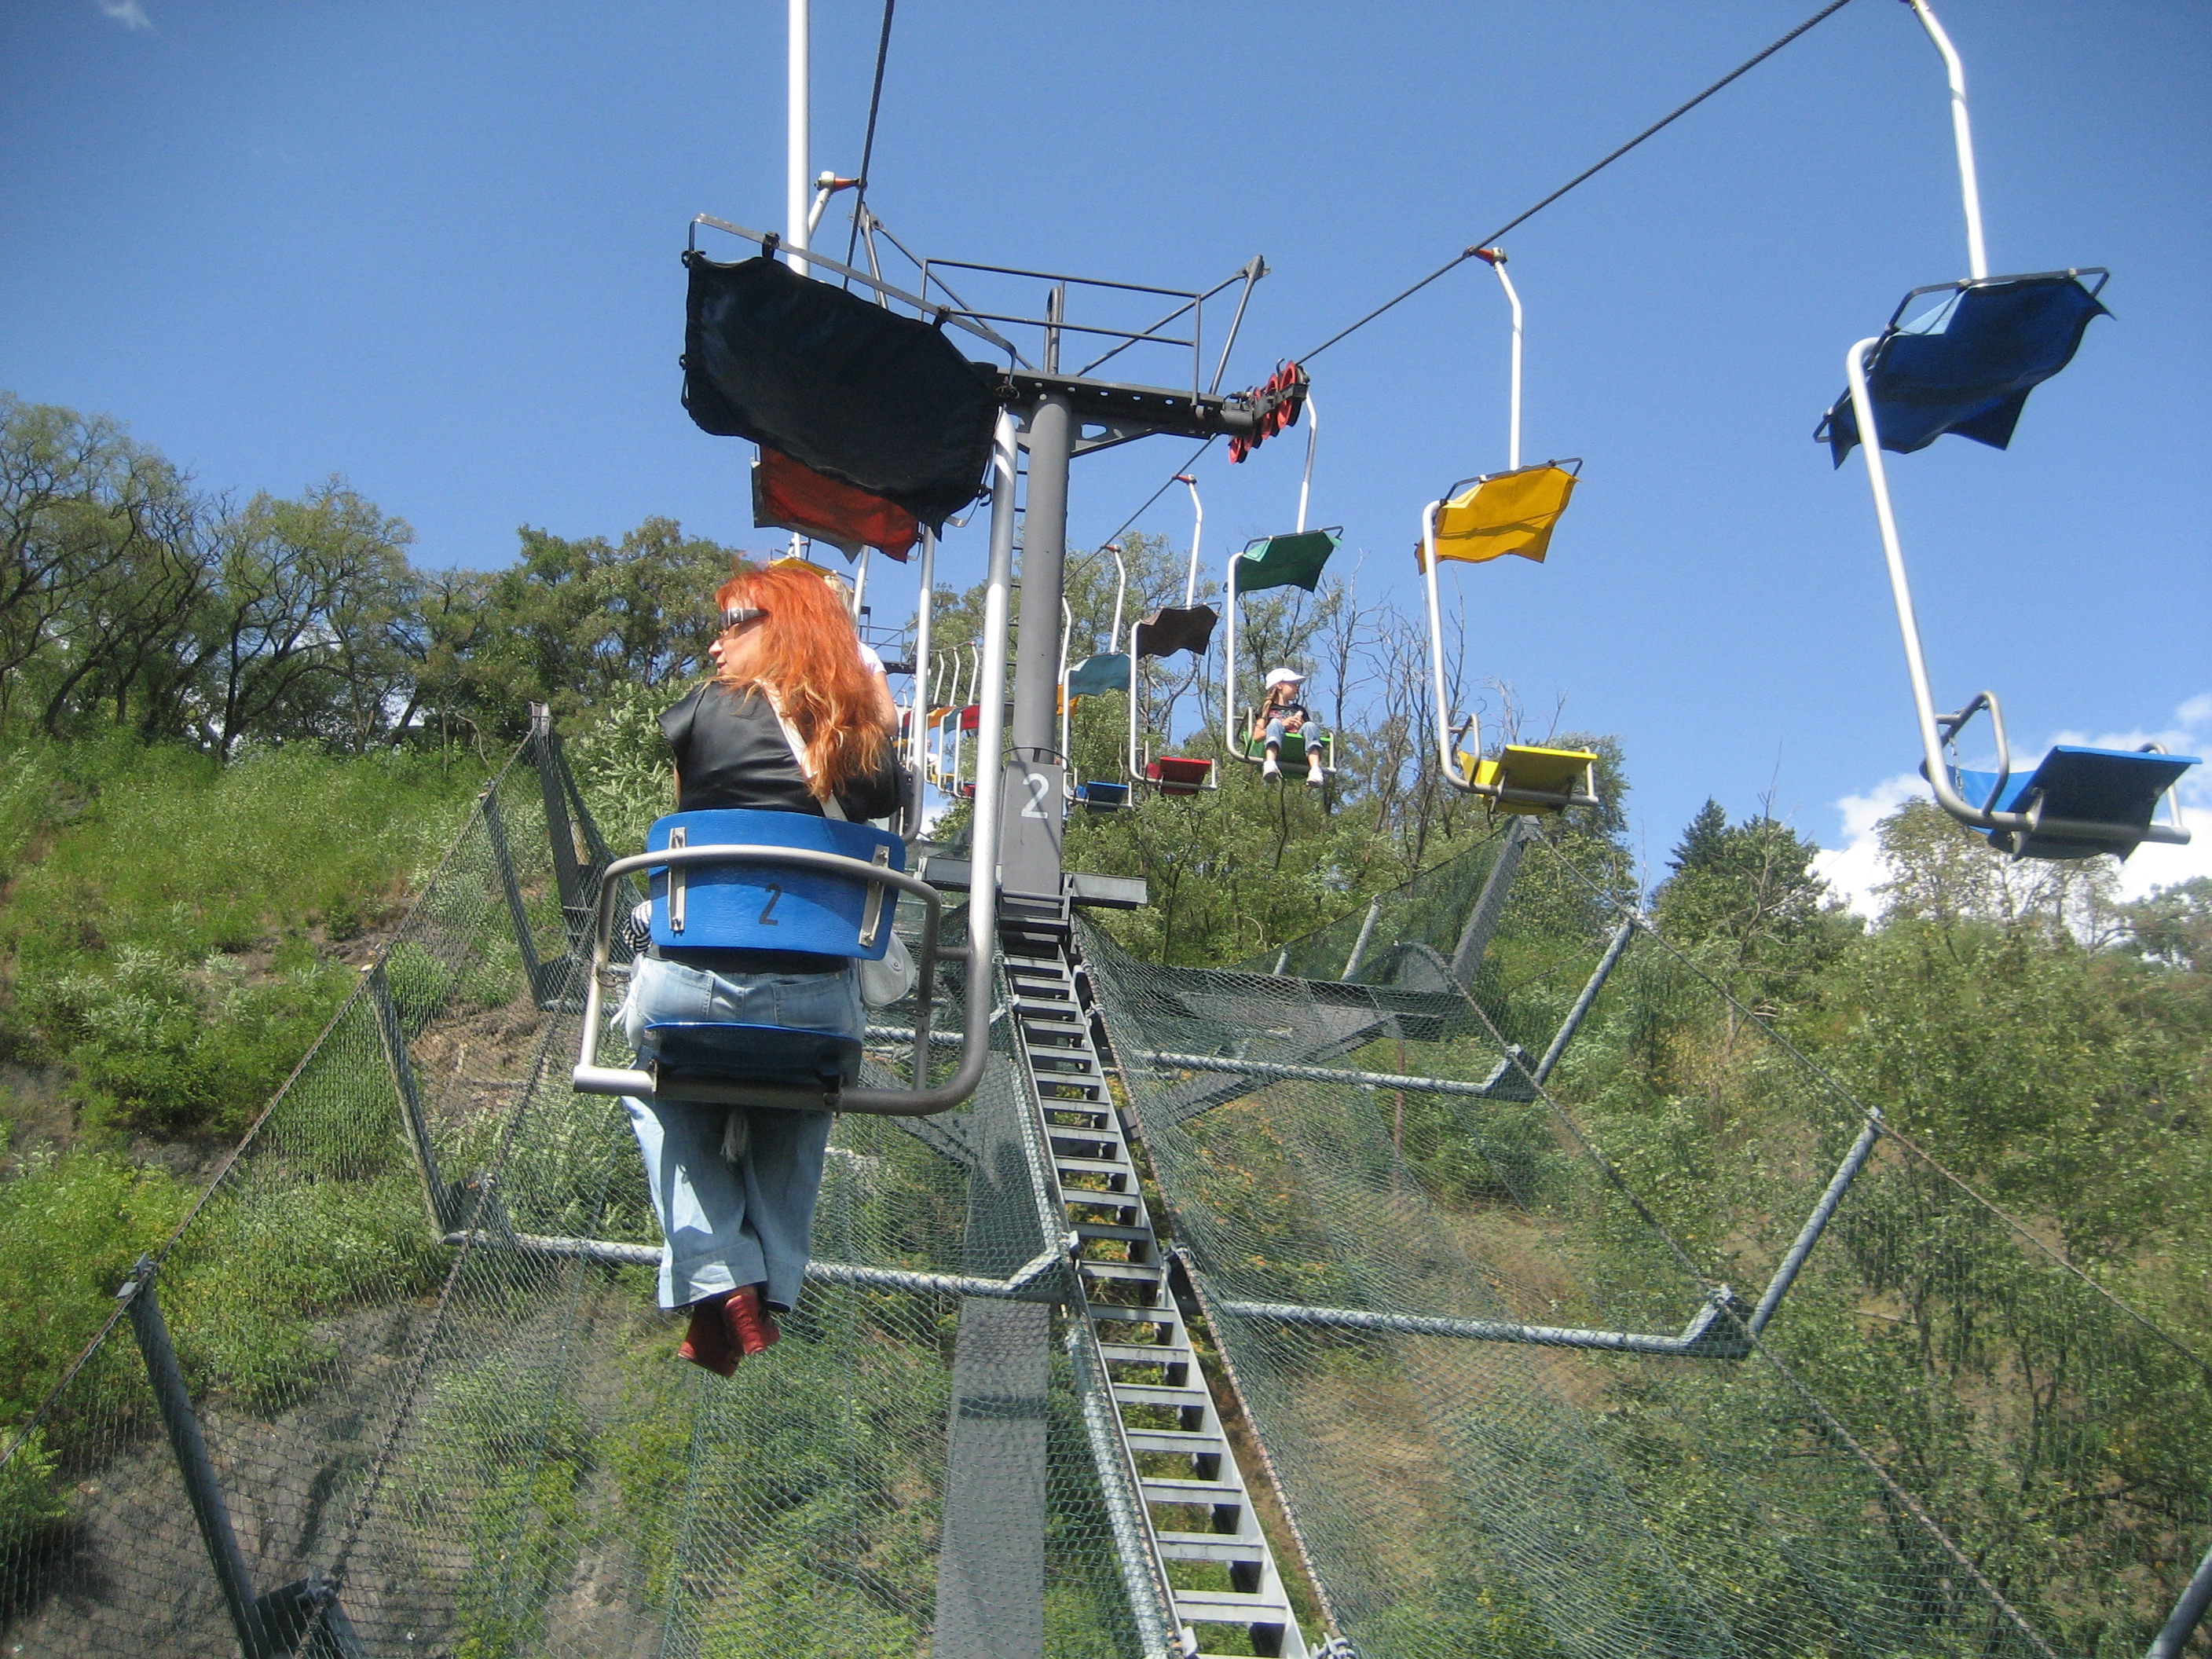 chair lift accident colorful dining chairs file prague zoo chairlift passengers view 29aug2009 jpg